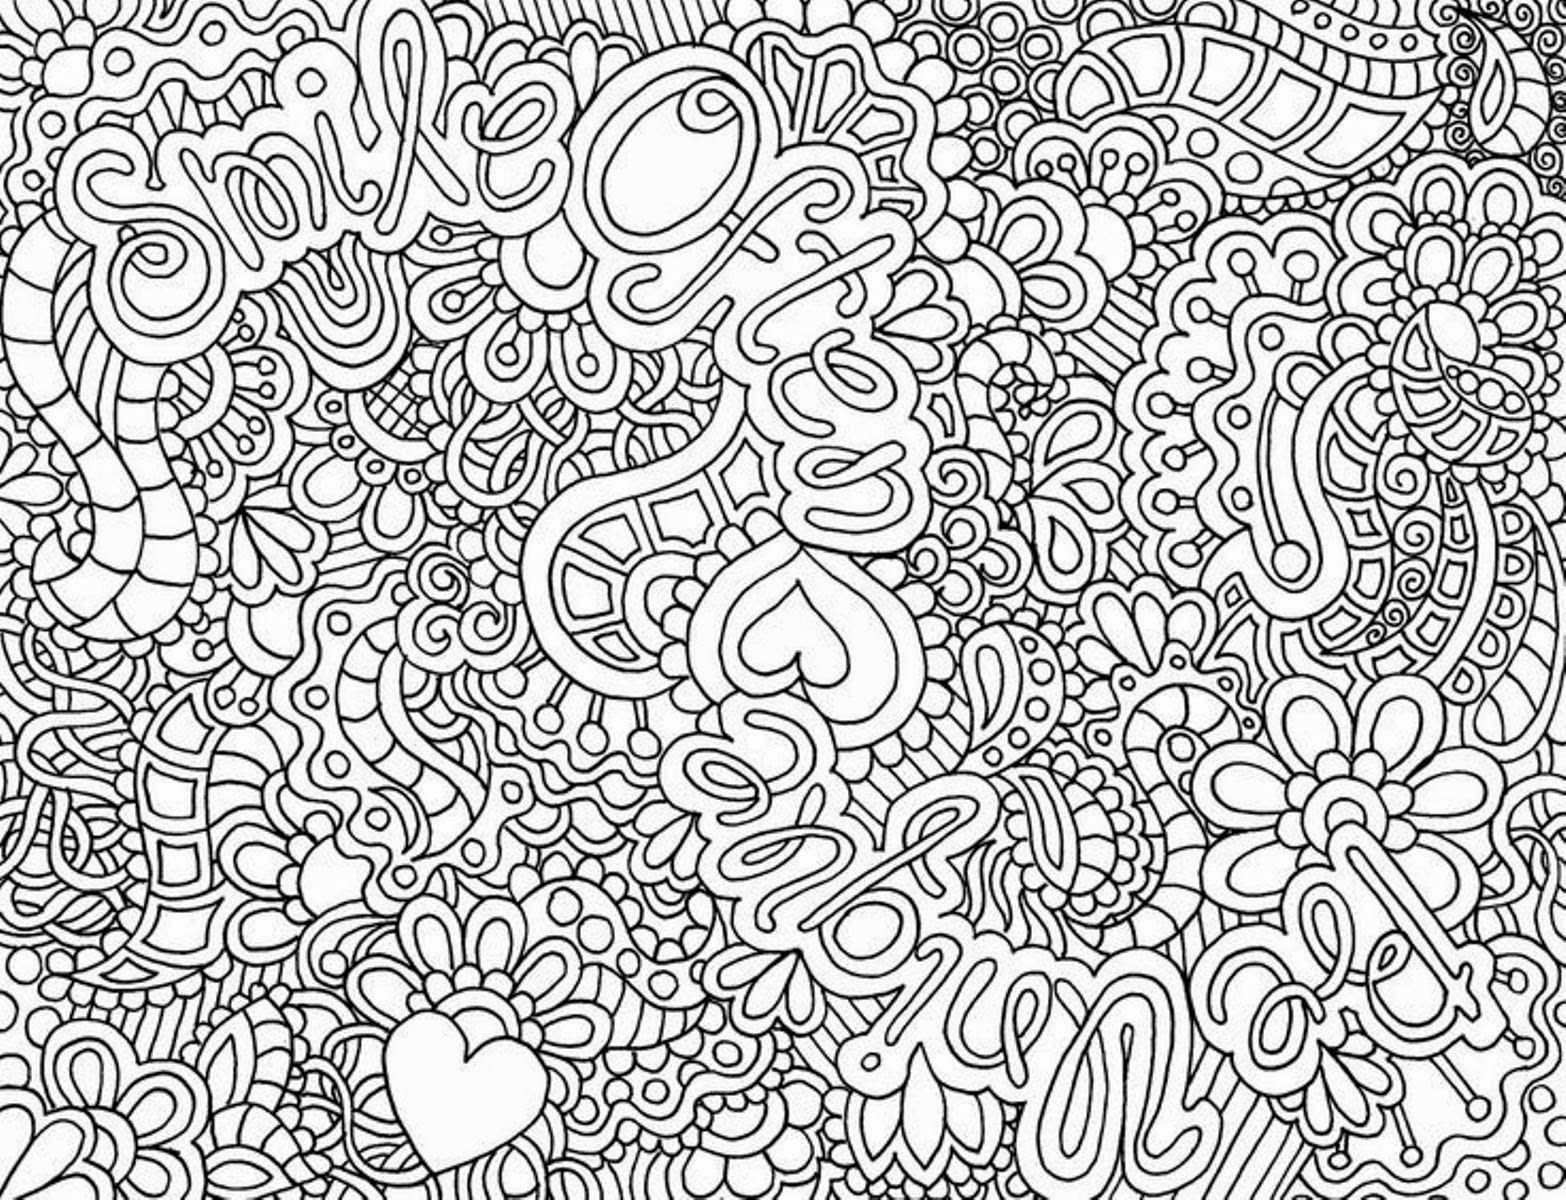 coloring pages adults coloring pages adults. 50 trippy coloring ...